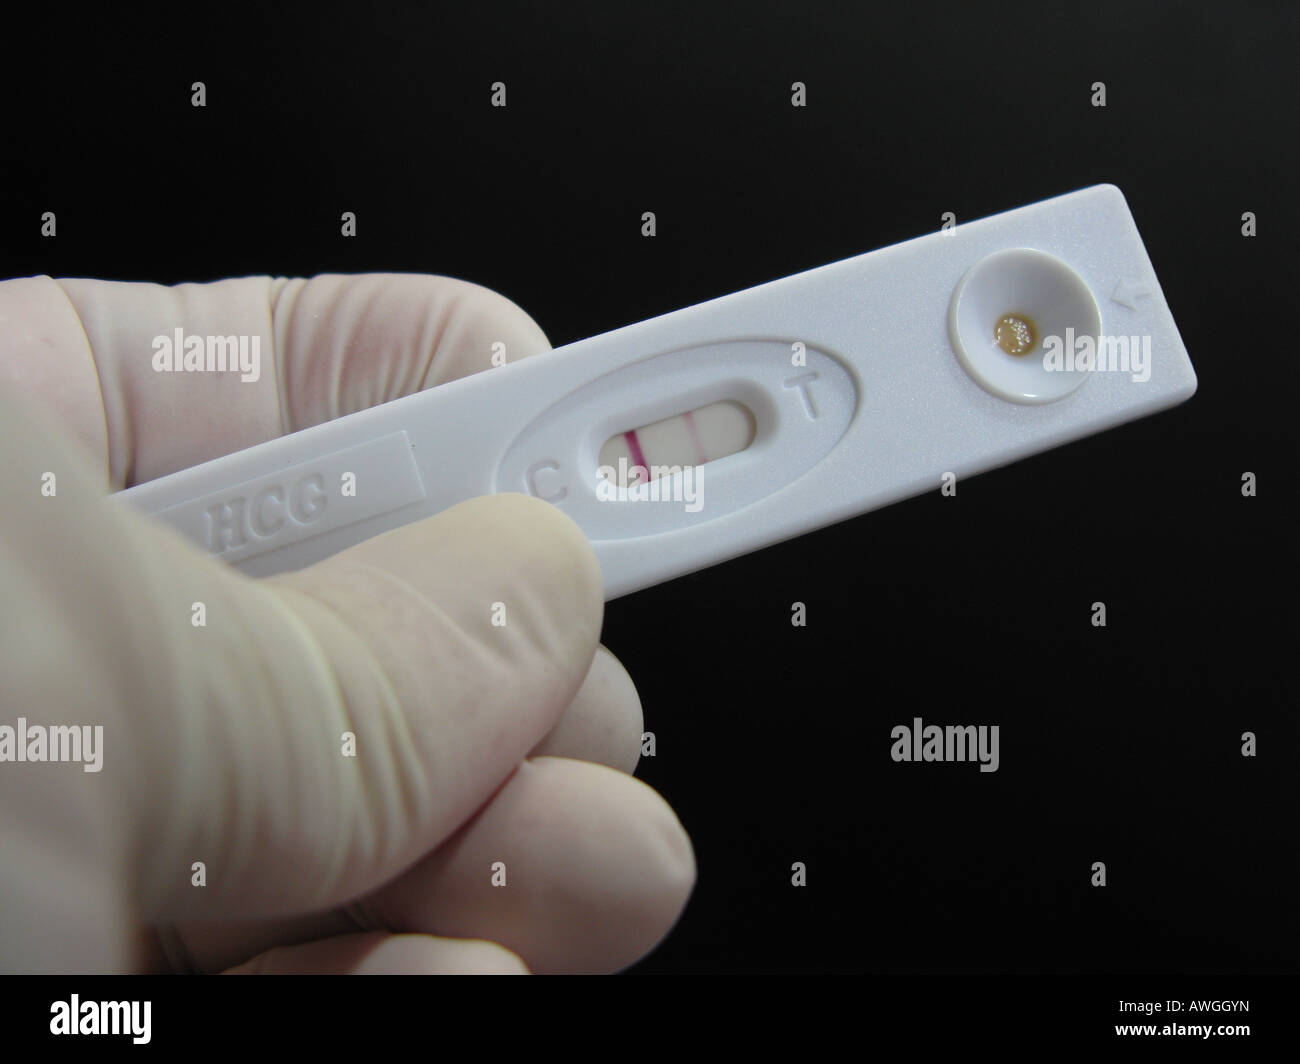 Pregnancy Test Showing Positive Resultresultado Positivo Stock